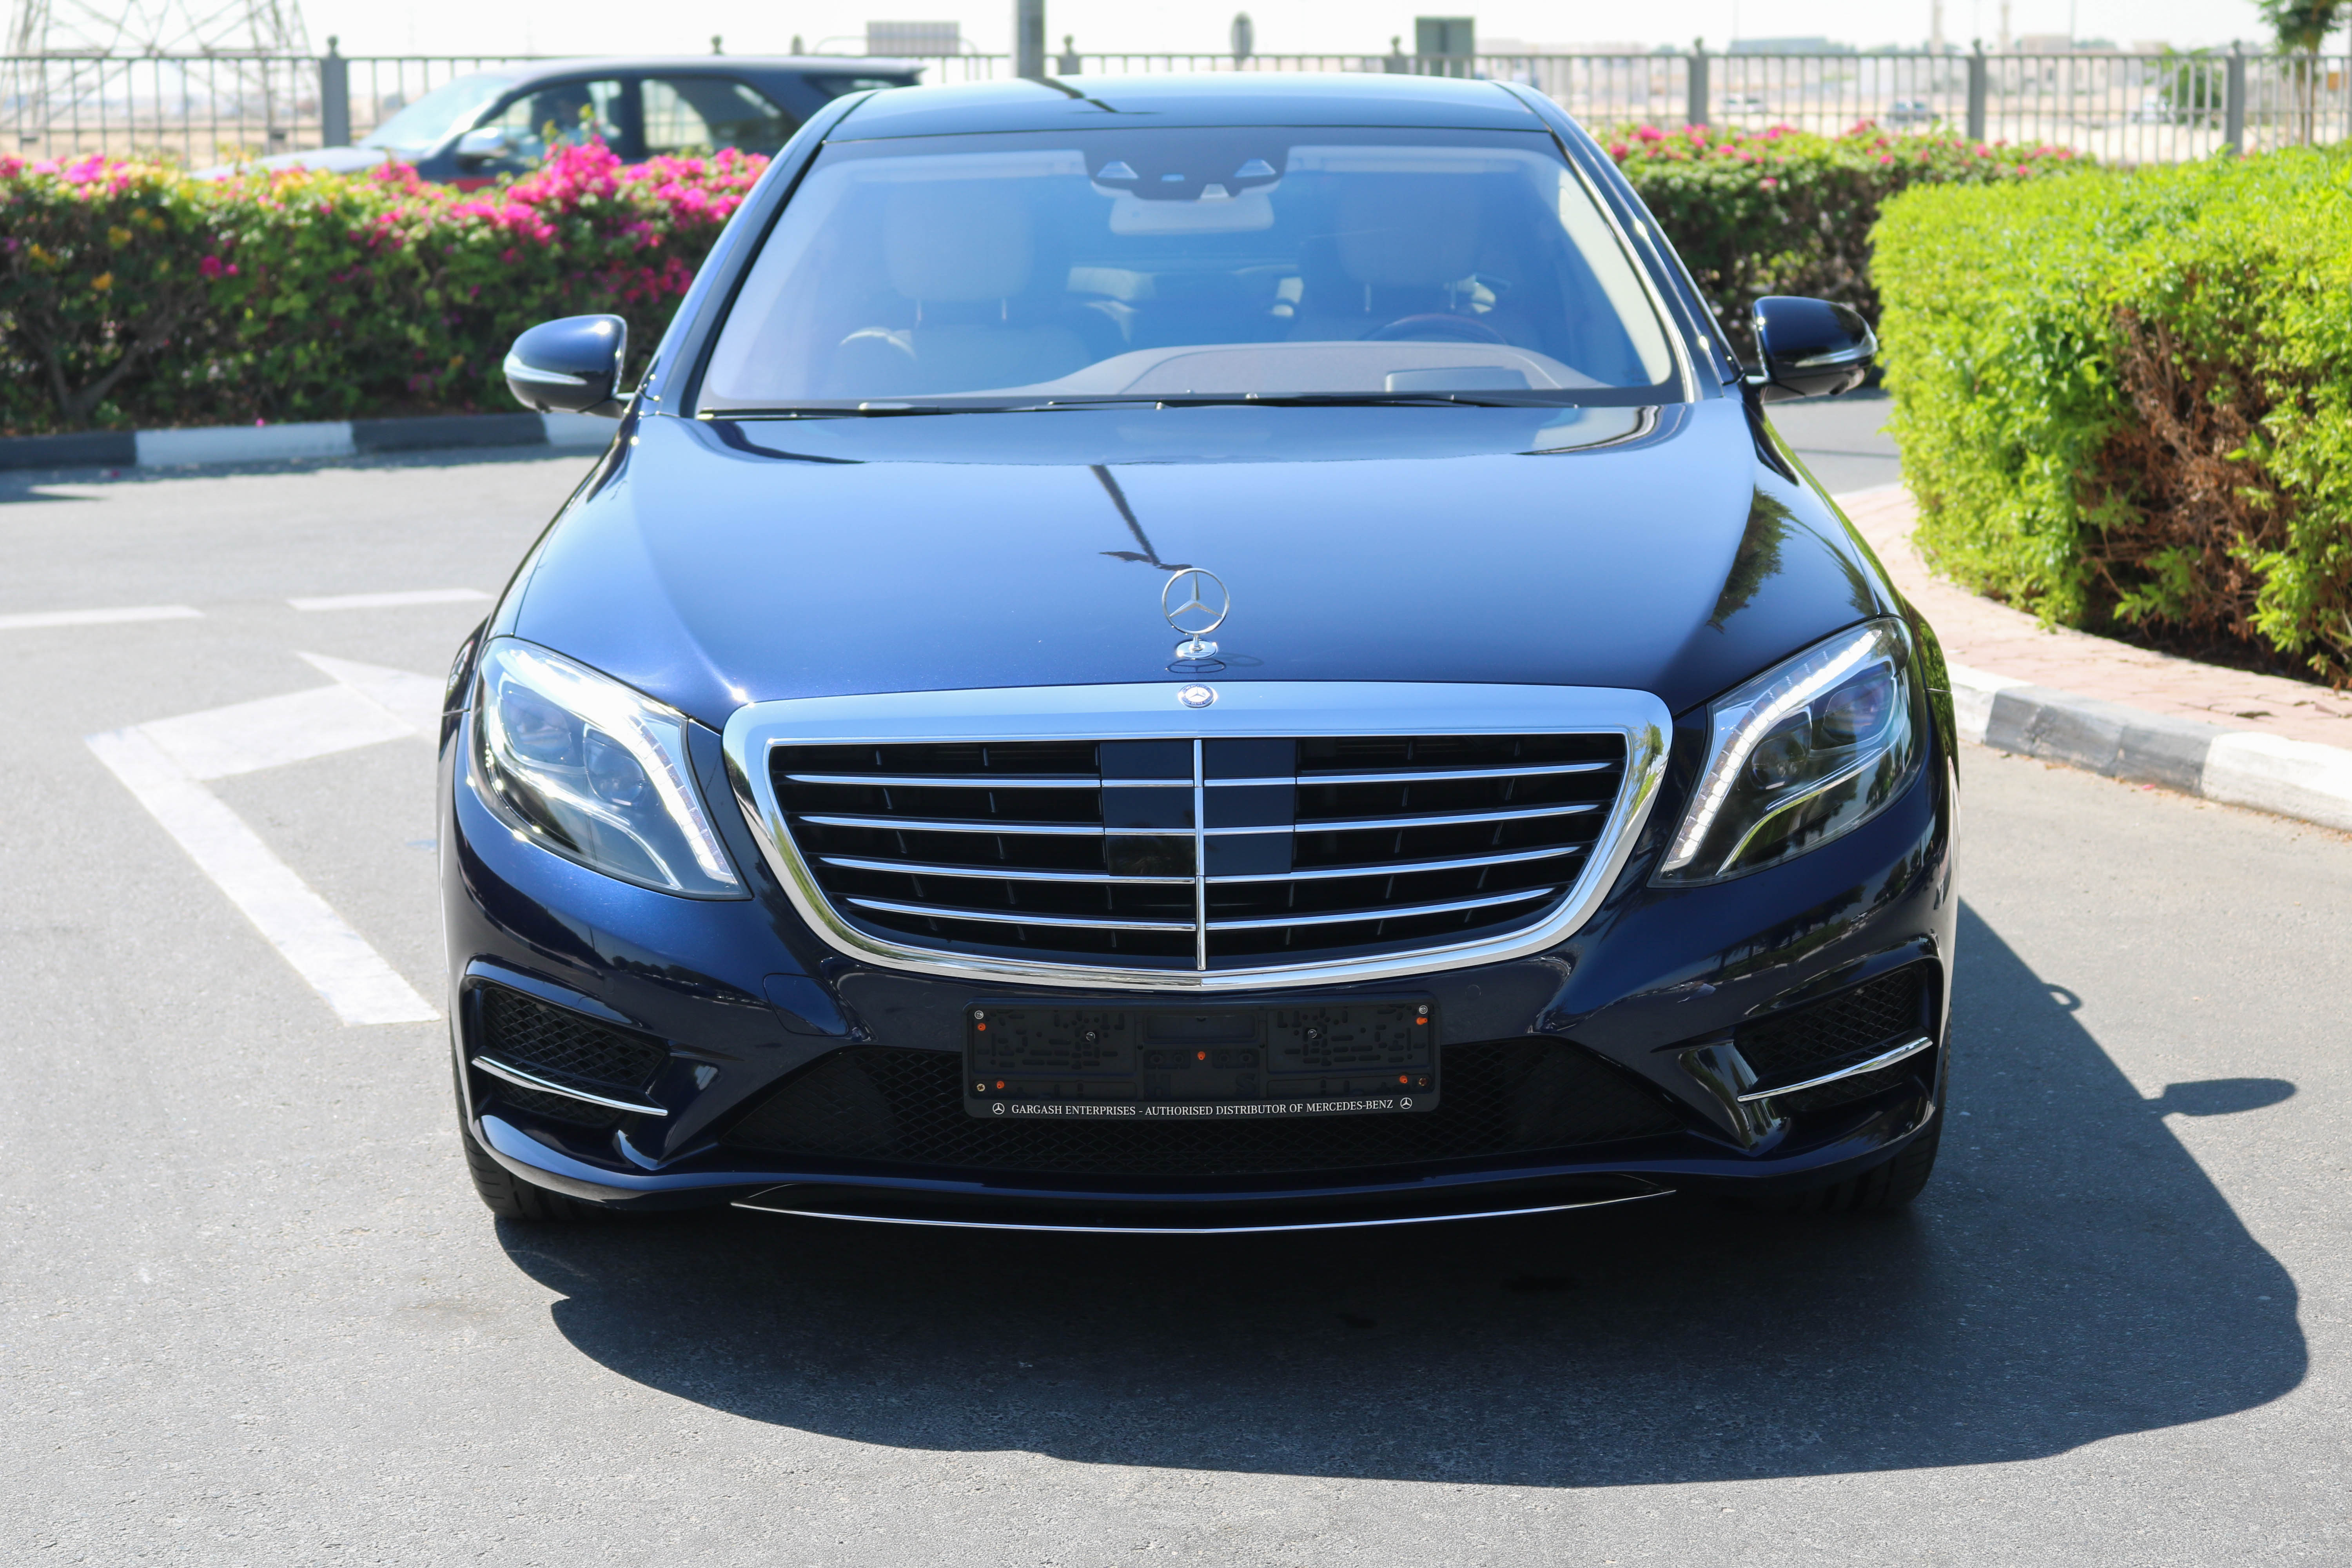 Mercedes benz s500 2015 formula motors llc dubai for Best time of year to buy a mercedes benz